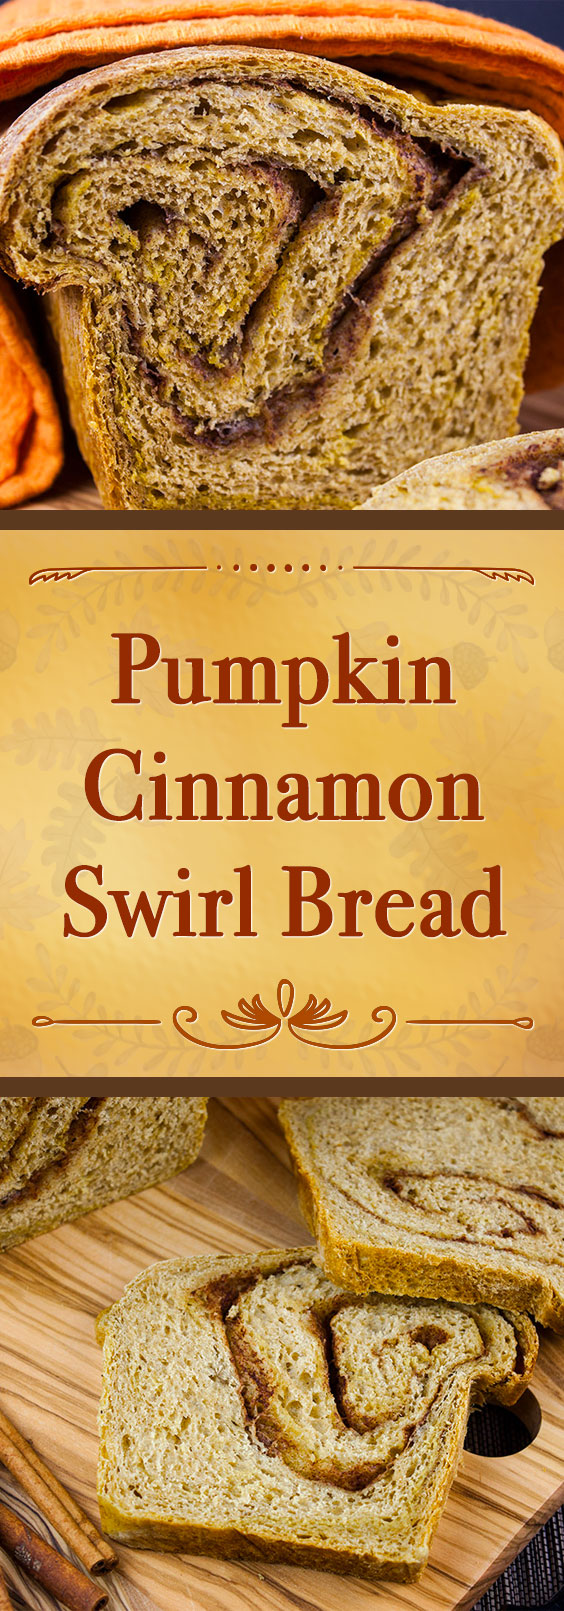 Pumpkin Cinnamon Swirl Bread - Love this bread warm from the oven, toasted slathered with butter and french toast for breakfast! #pumpkin #recipe #fall #holiday